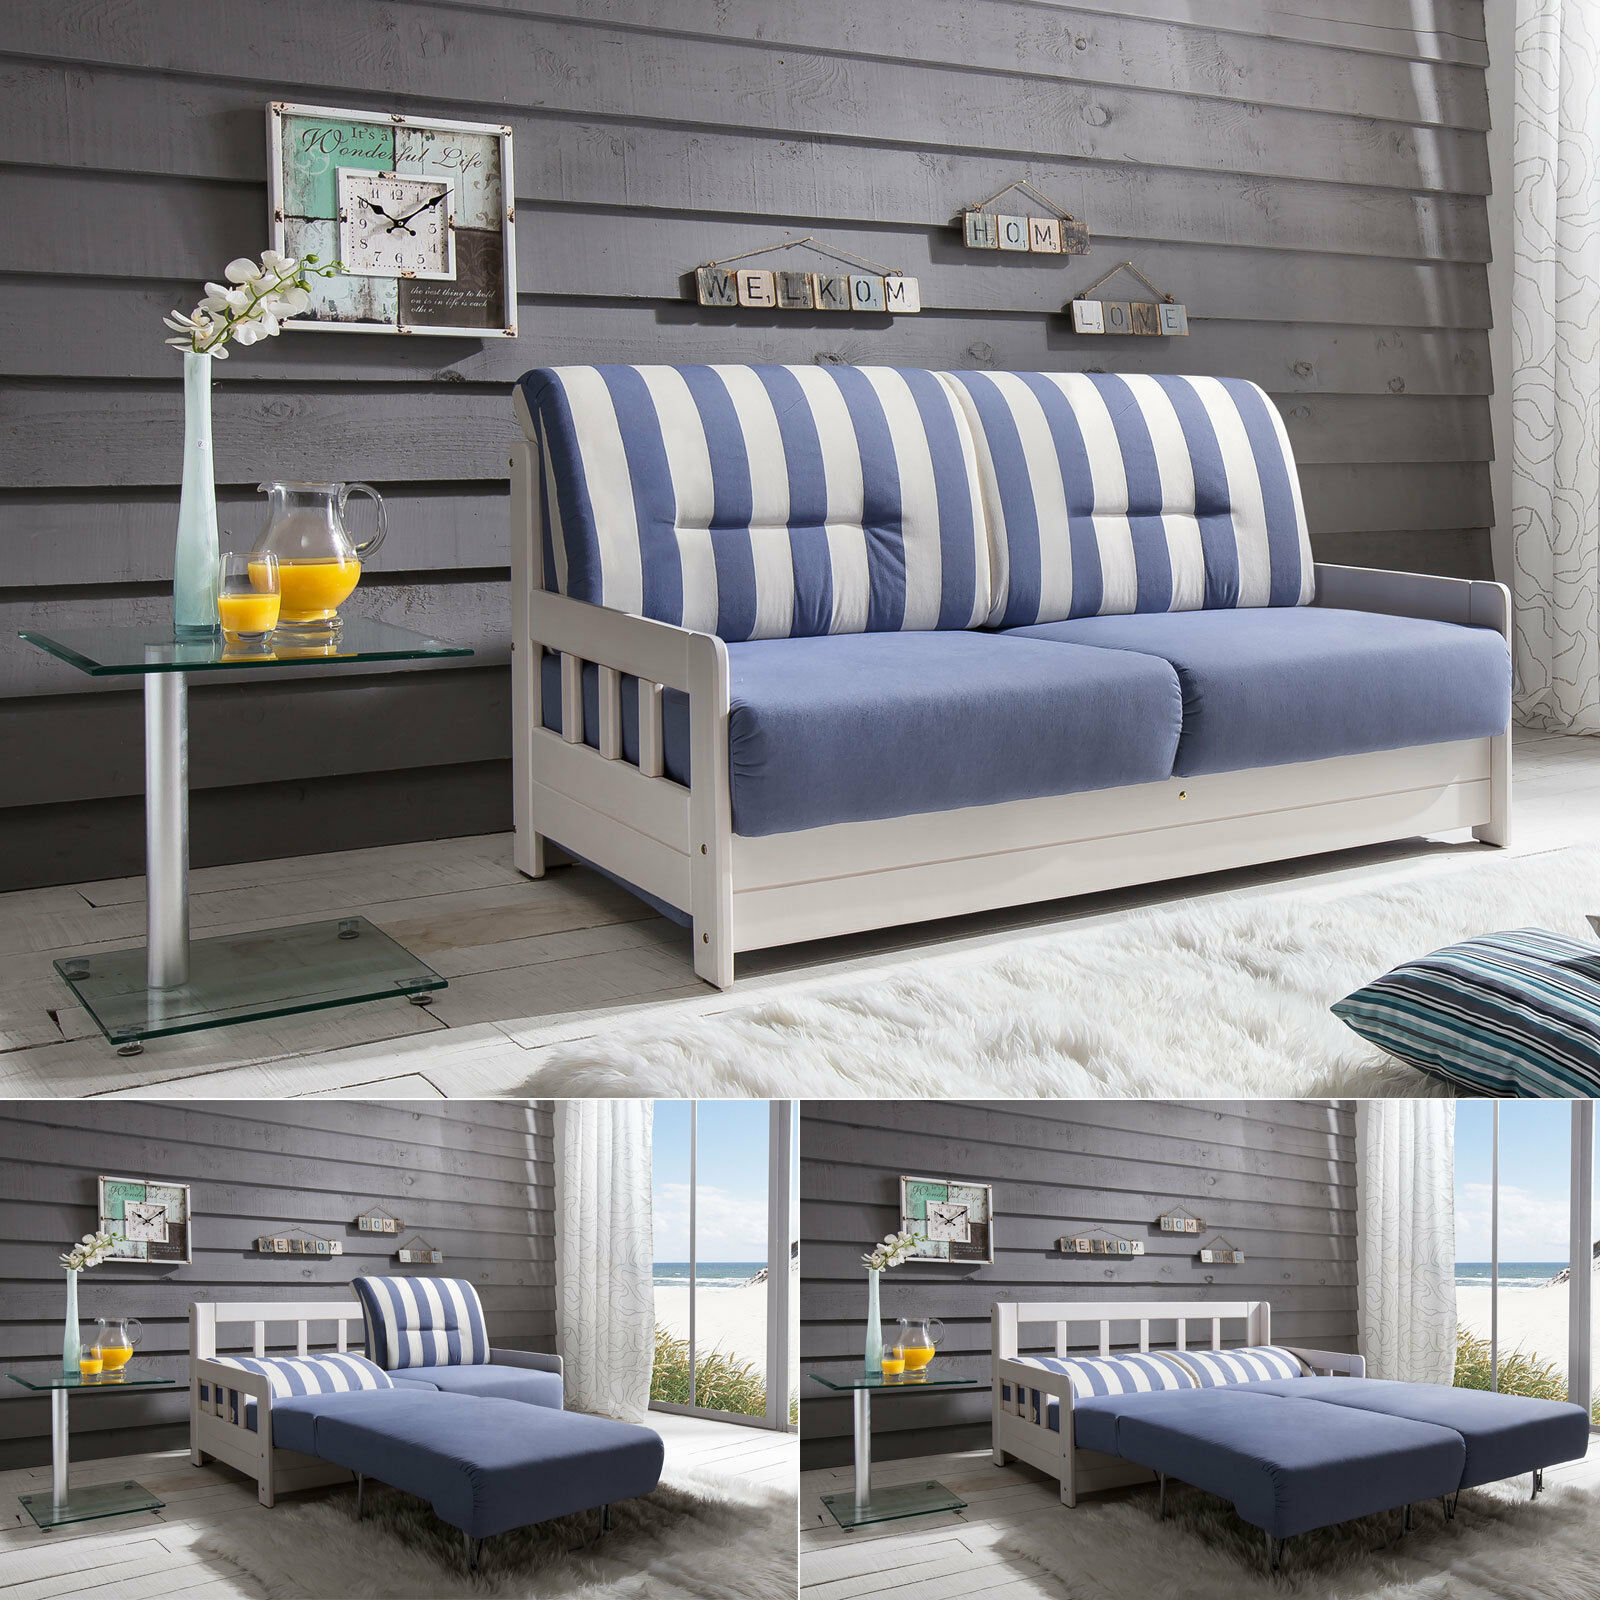 schlafsofa campus sofa funktionssofa stoff blau wei inkl liegefunktion 154 cm eur 499 95. Black Bedroom Furniture Sets. Home Design Ideas